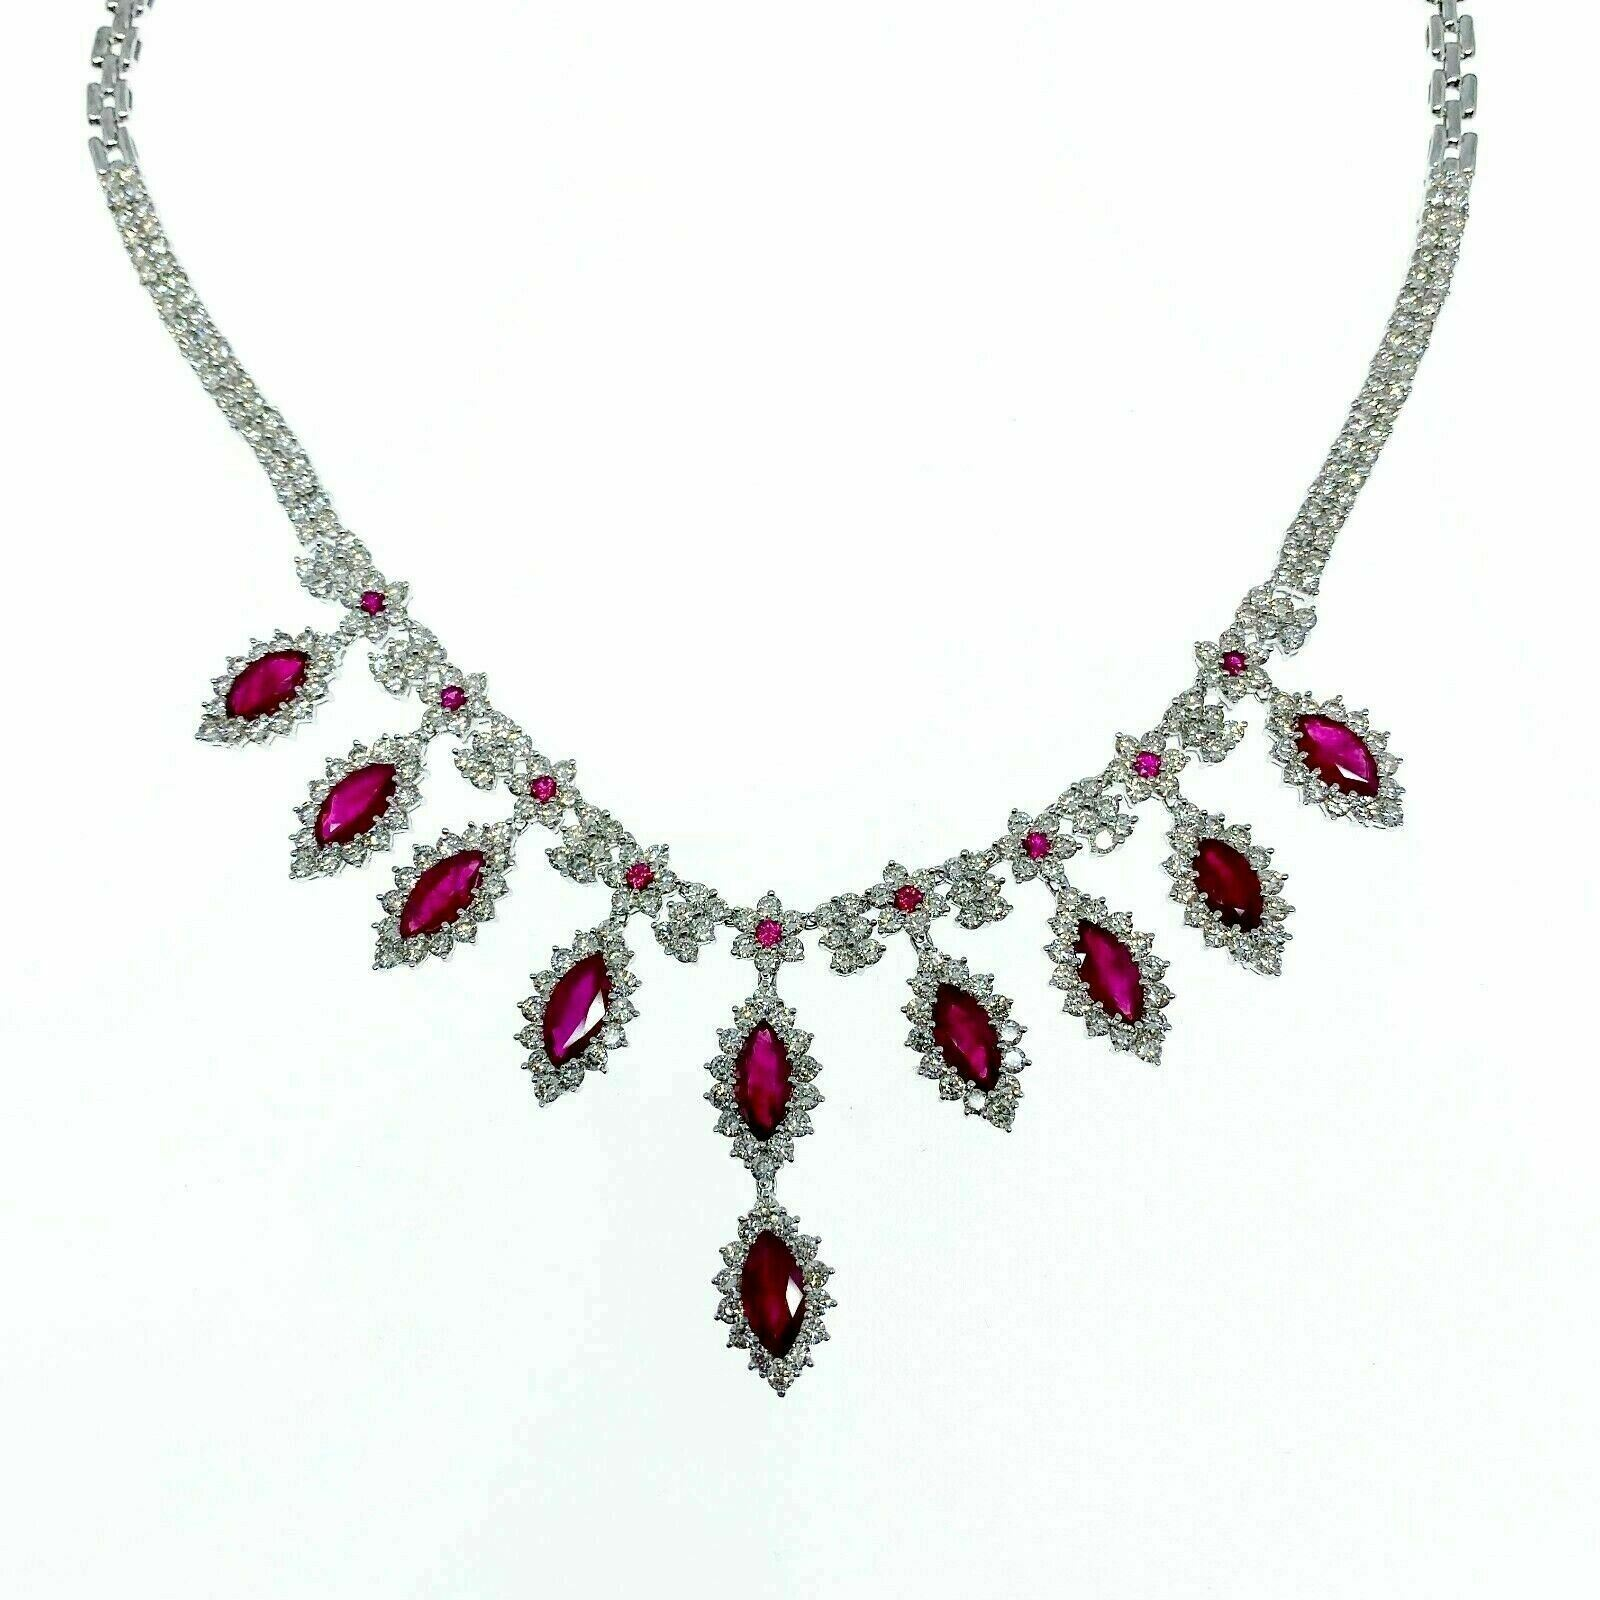 31.24 Carats t.w. Diamond and Burmese Ruby Dinner Necklace 18K Gold 54 Grams